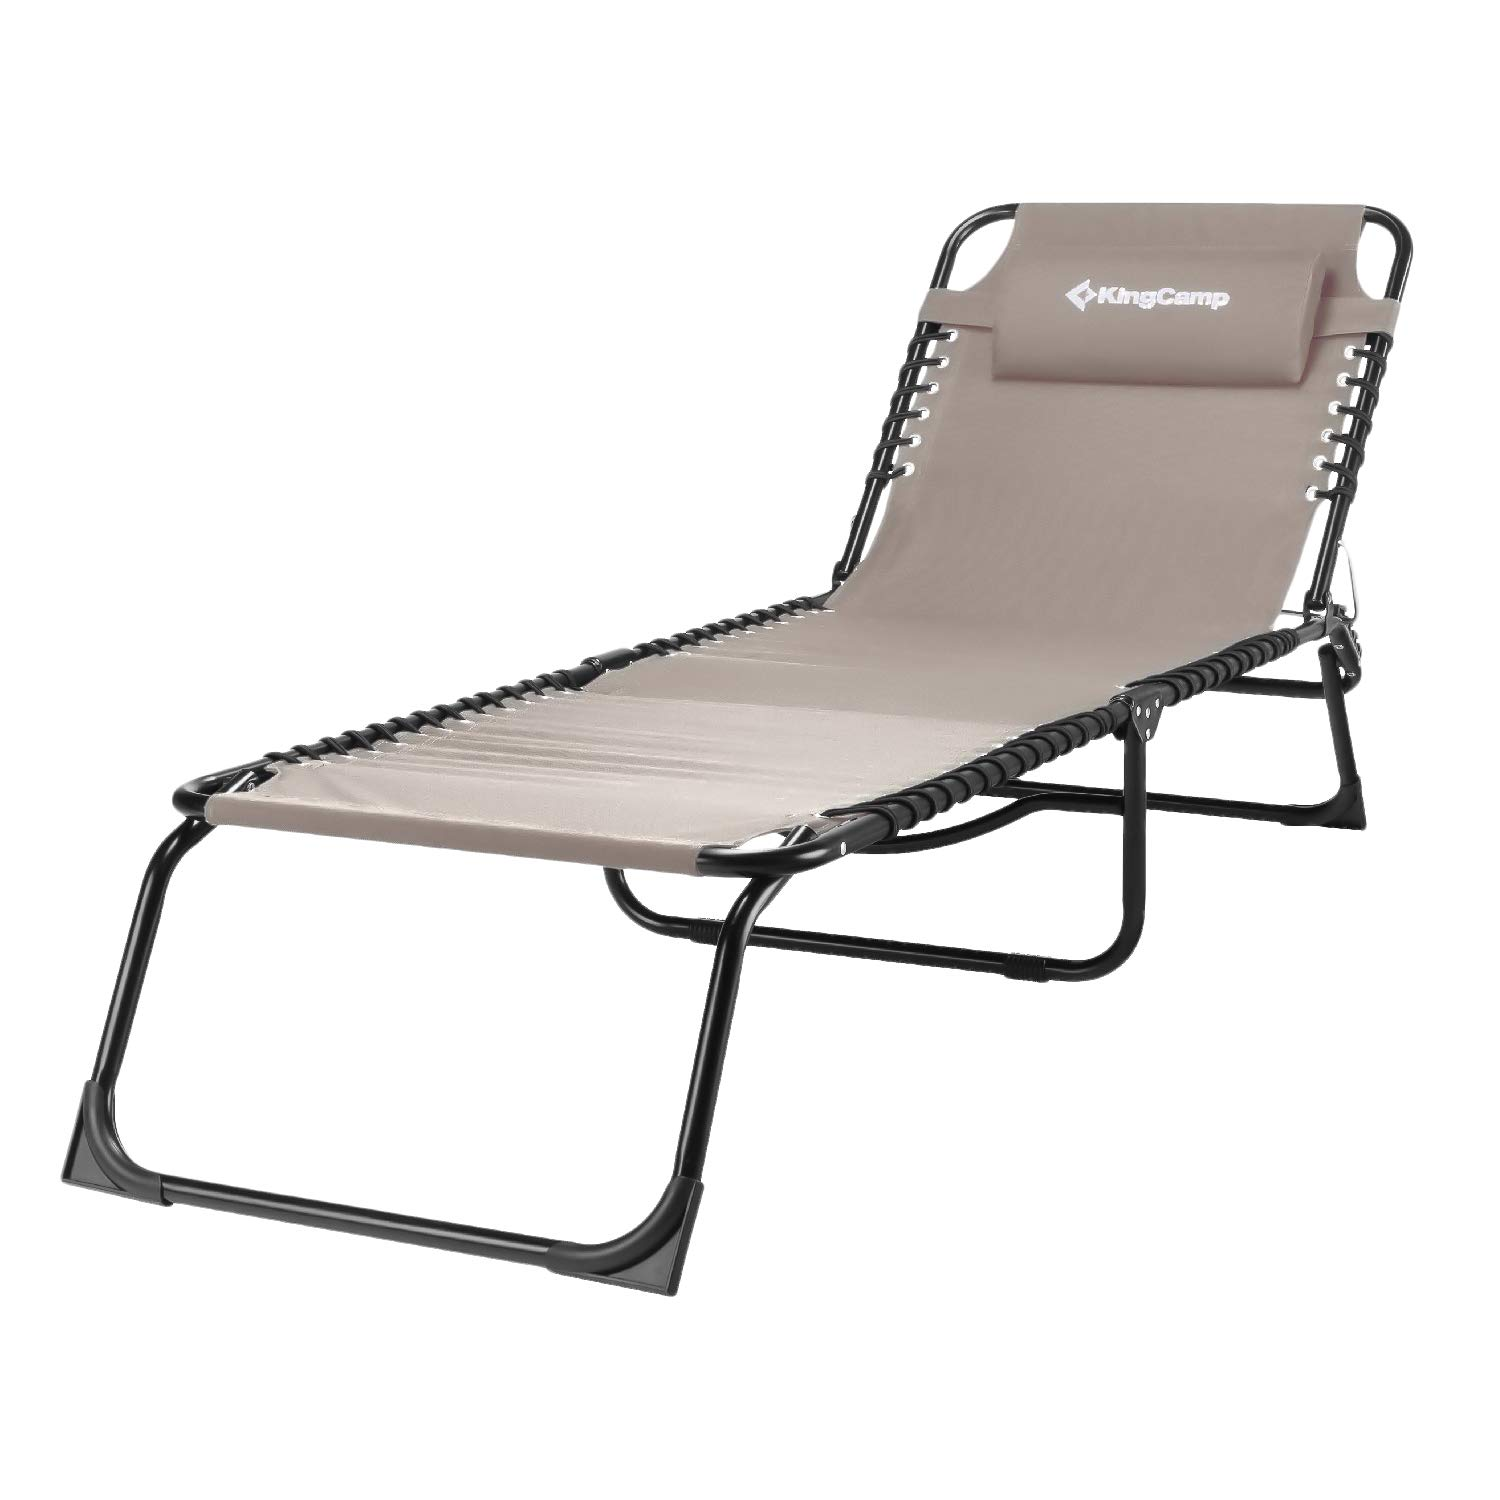 KingCamp Patio Lounge Chair Chaise Bed 3 Adjustable Reclining Positions Steel Frame 600D Oxford Folding Camping Cot with Removable Pillow for Camping Pool Beach Supports 300lbs, BEIGE by KingCamp